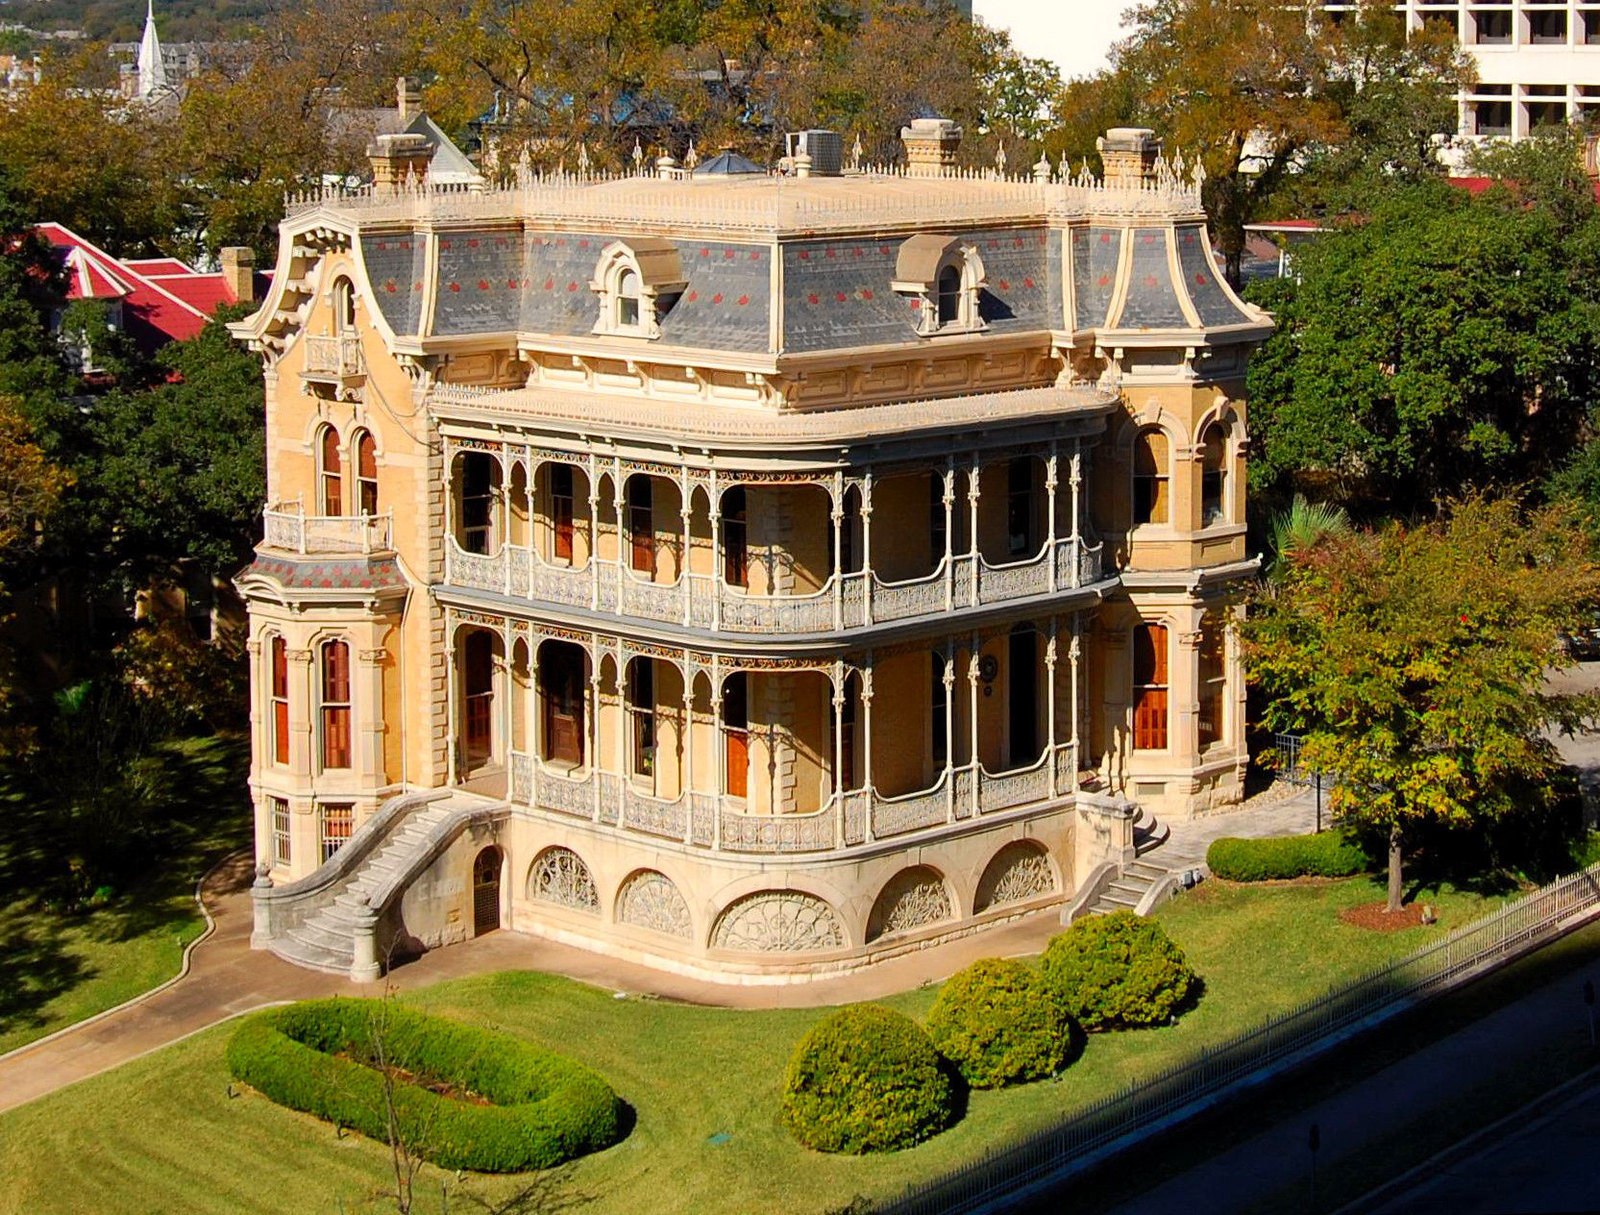 John Bremond, Jr. House, Austin, Texas. Credit LoneStarMike